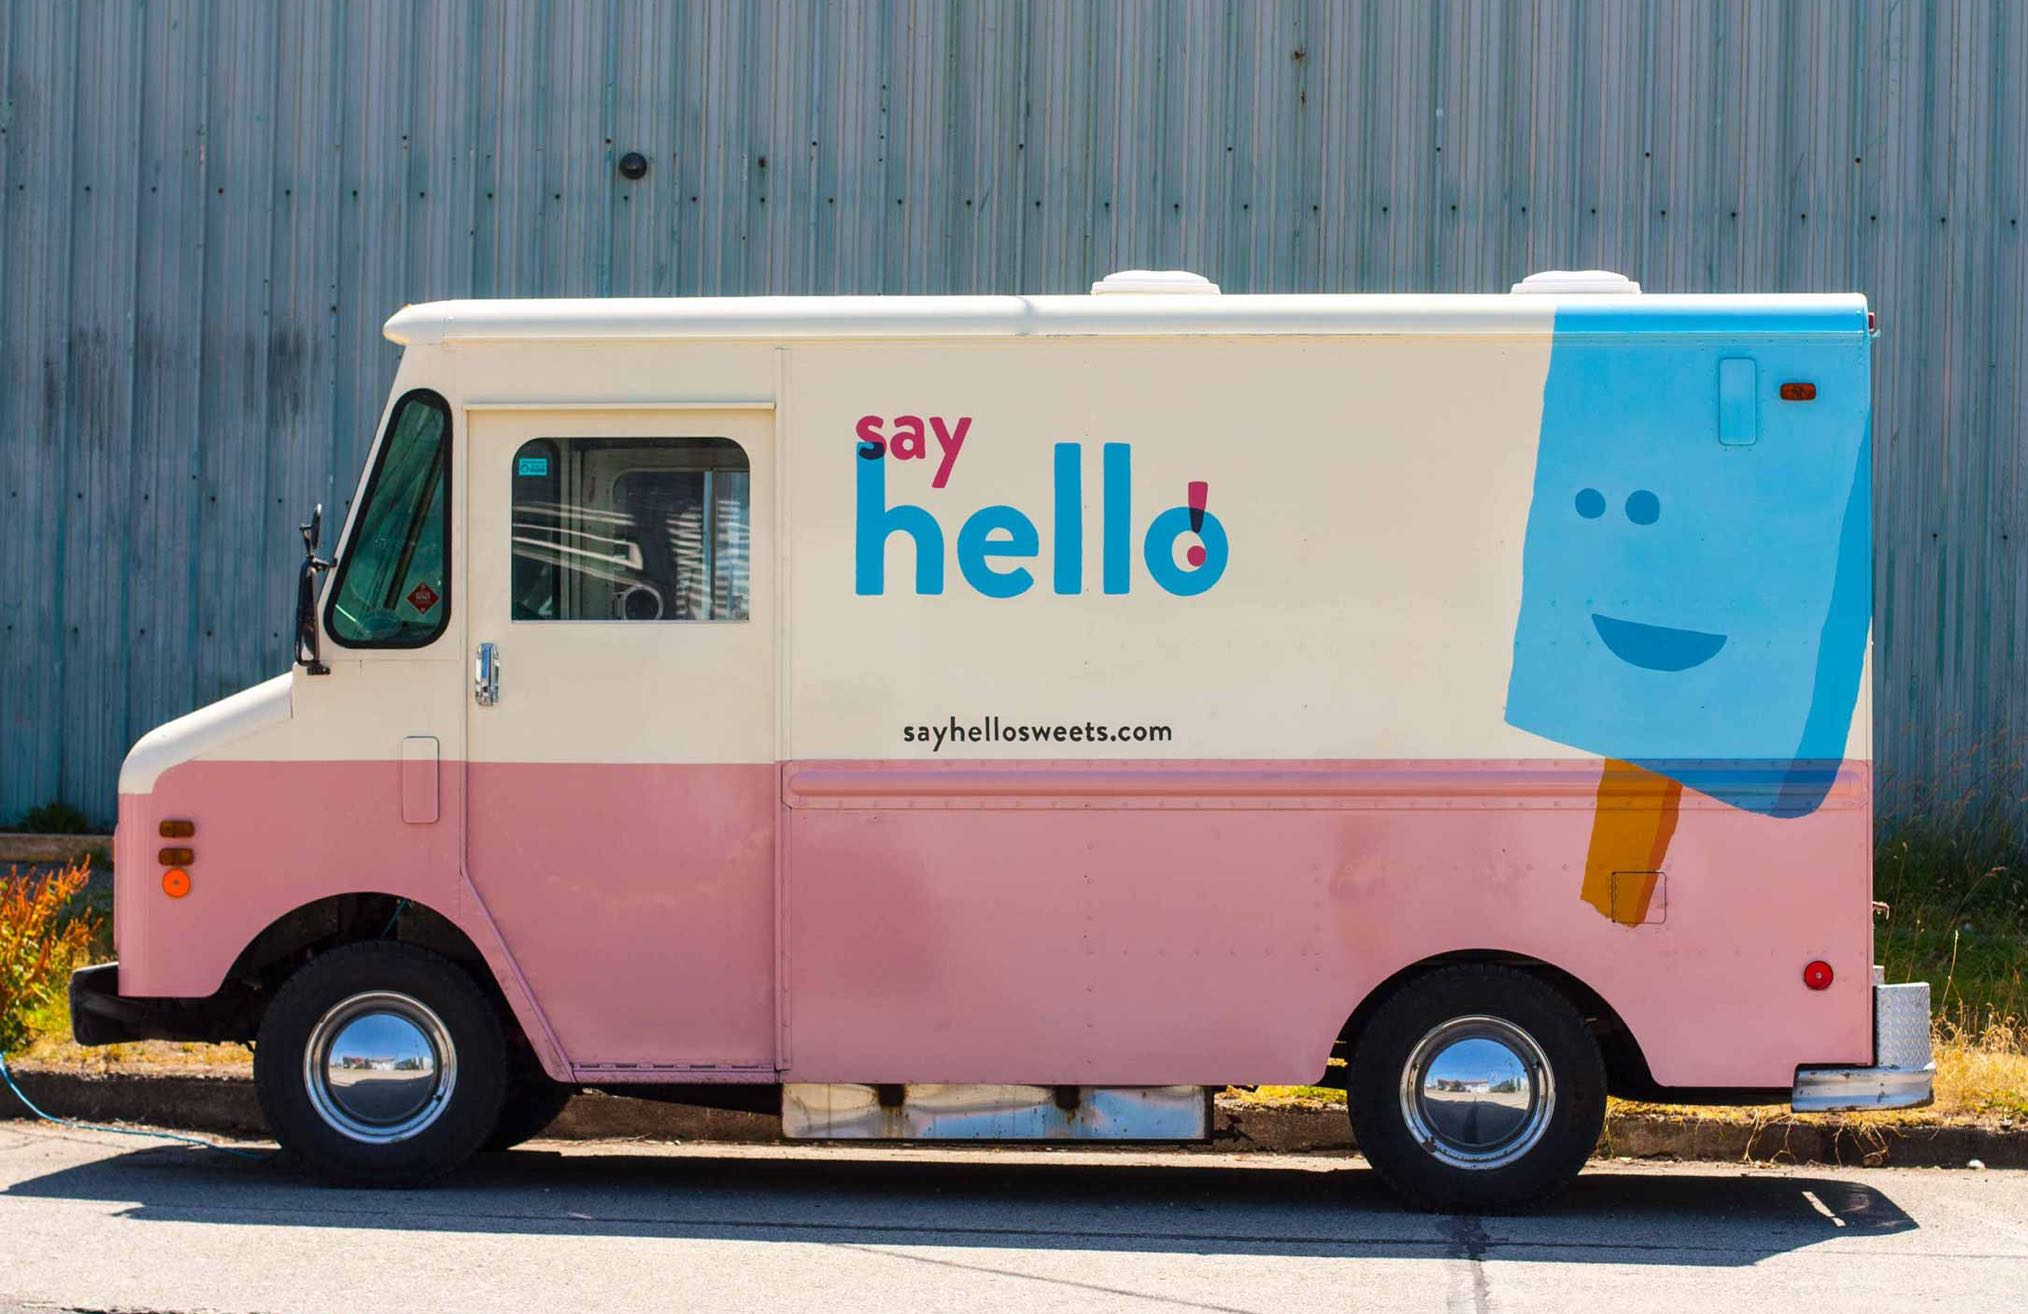 Say Hello Ice Cream Truck side profile showing pink and white exterior with vibrant blue brandmark and ice cream bar character — by Dima.